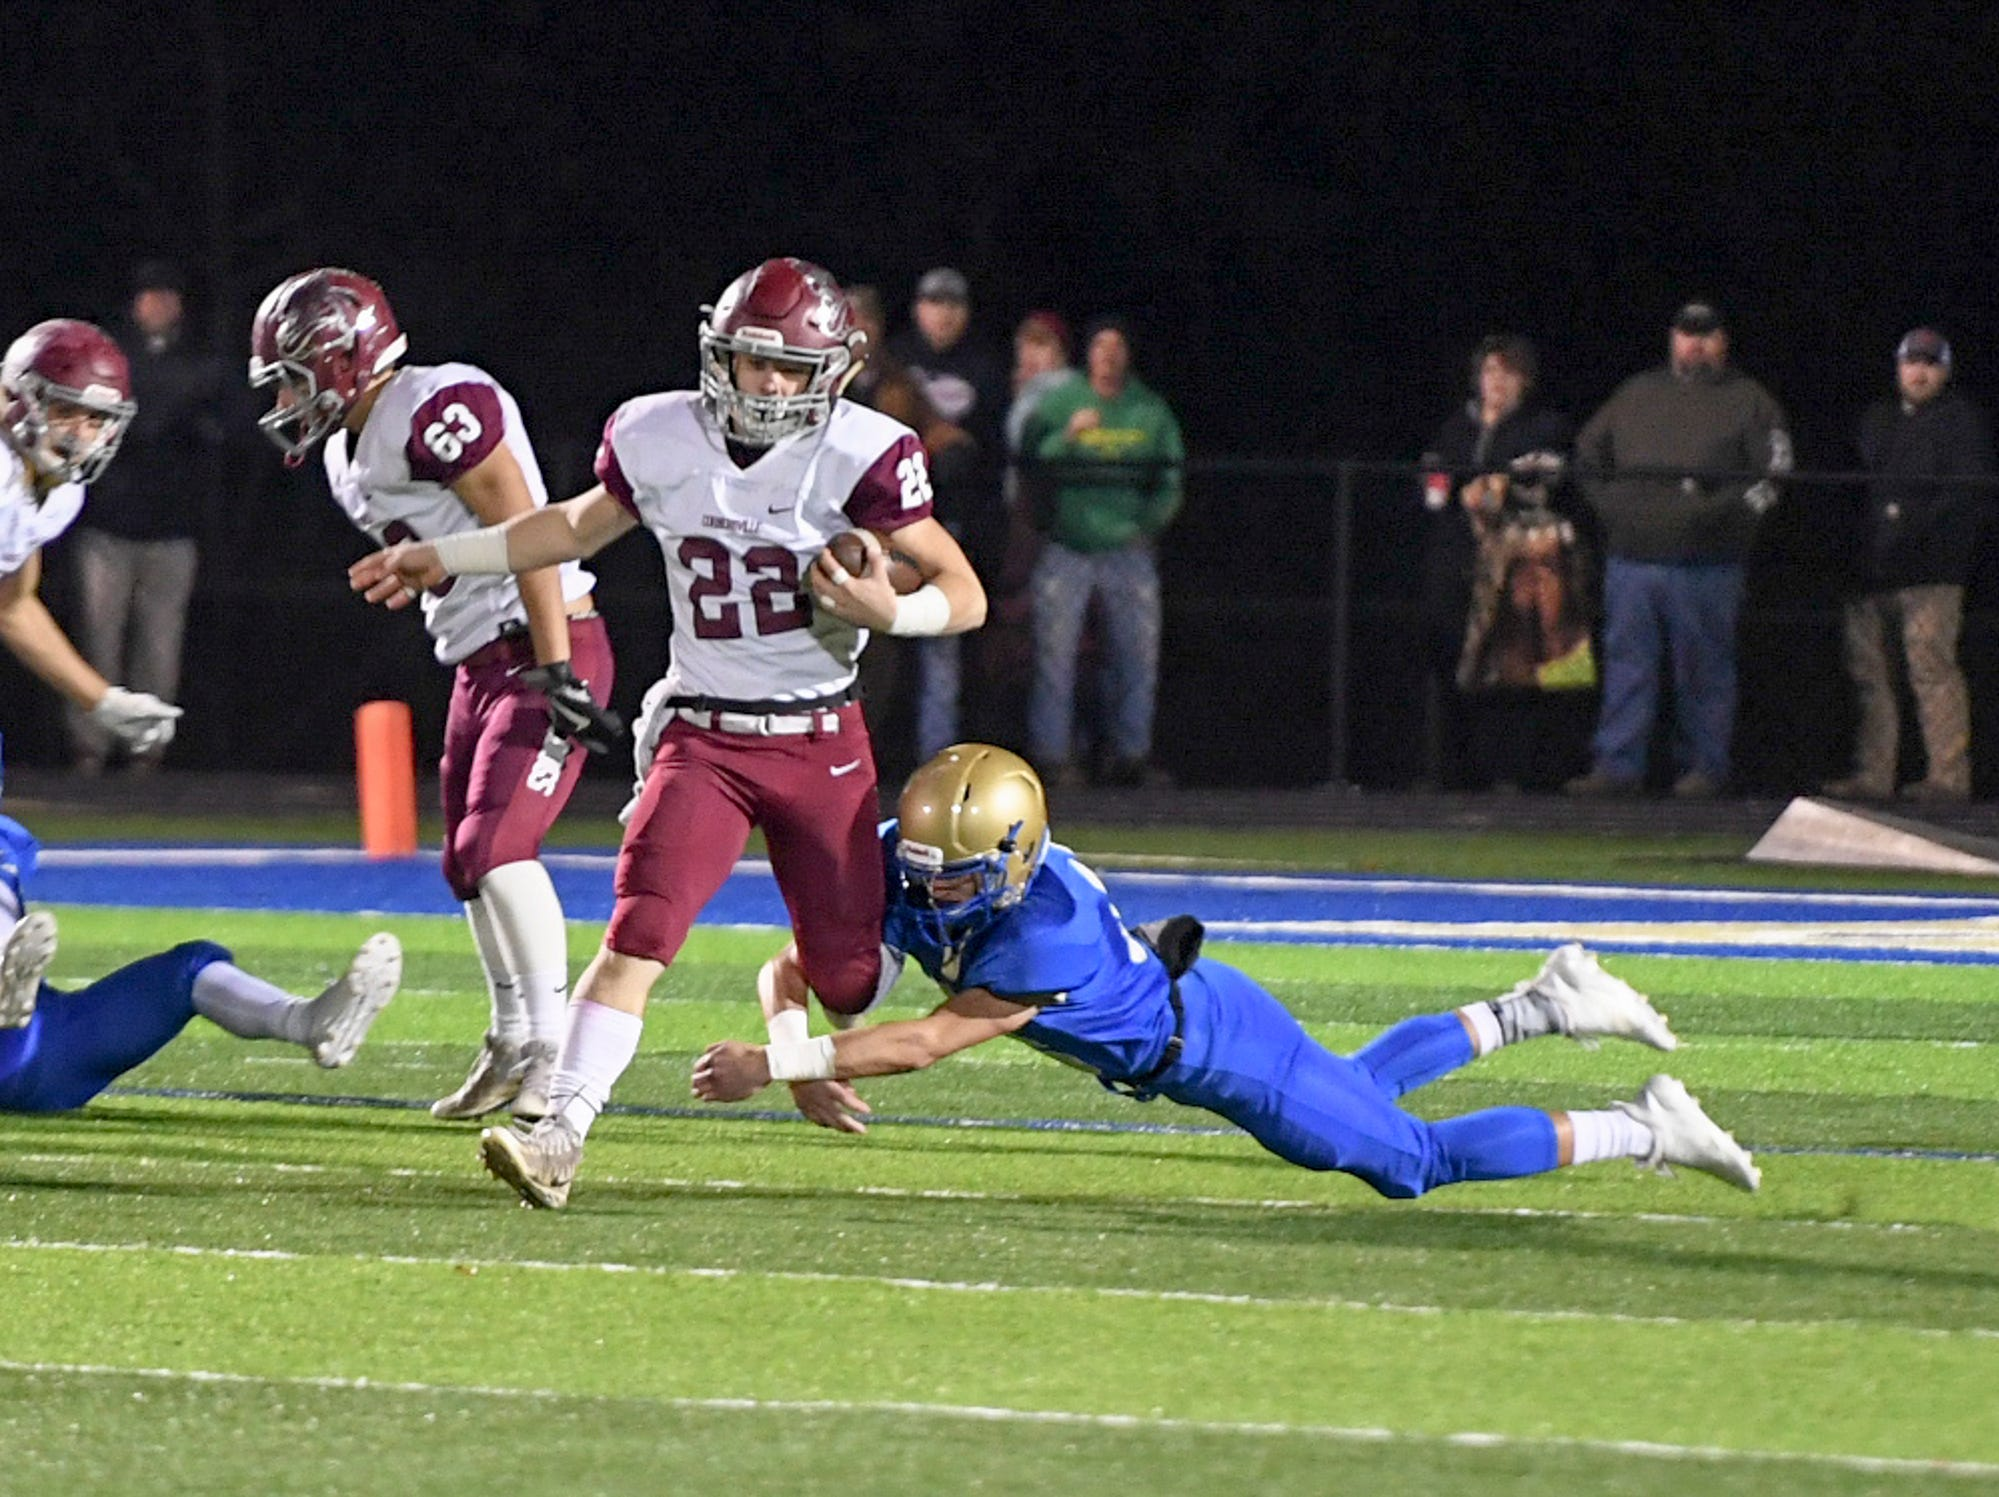 Cornersville's Eli Woodard is tripped up by Huntingdon's Kelby Pearson during their TSSAA Class A quarter final game, Friday, November 16. Huntingdon fell to Cornersville, 13-7.